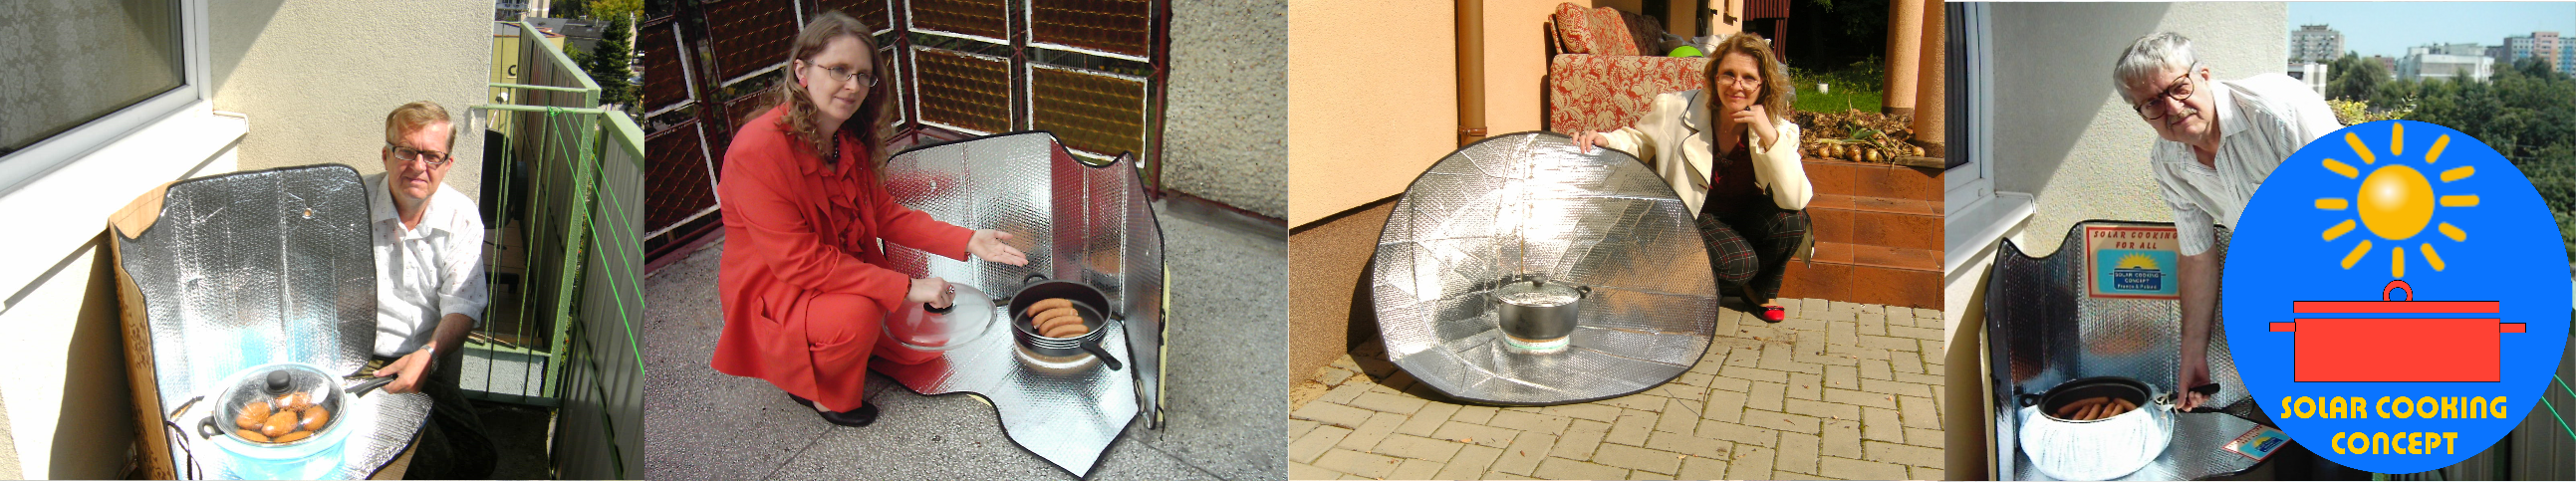 Solar Cooking Concept